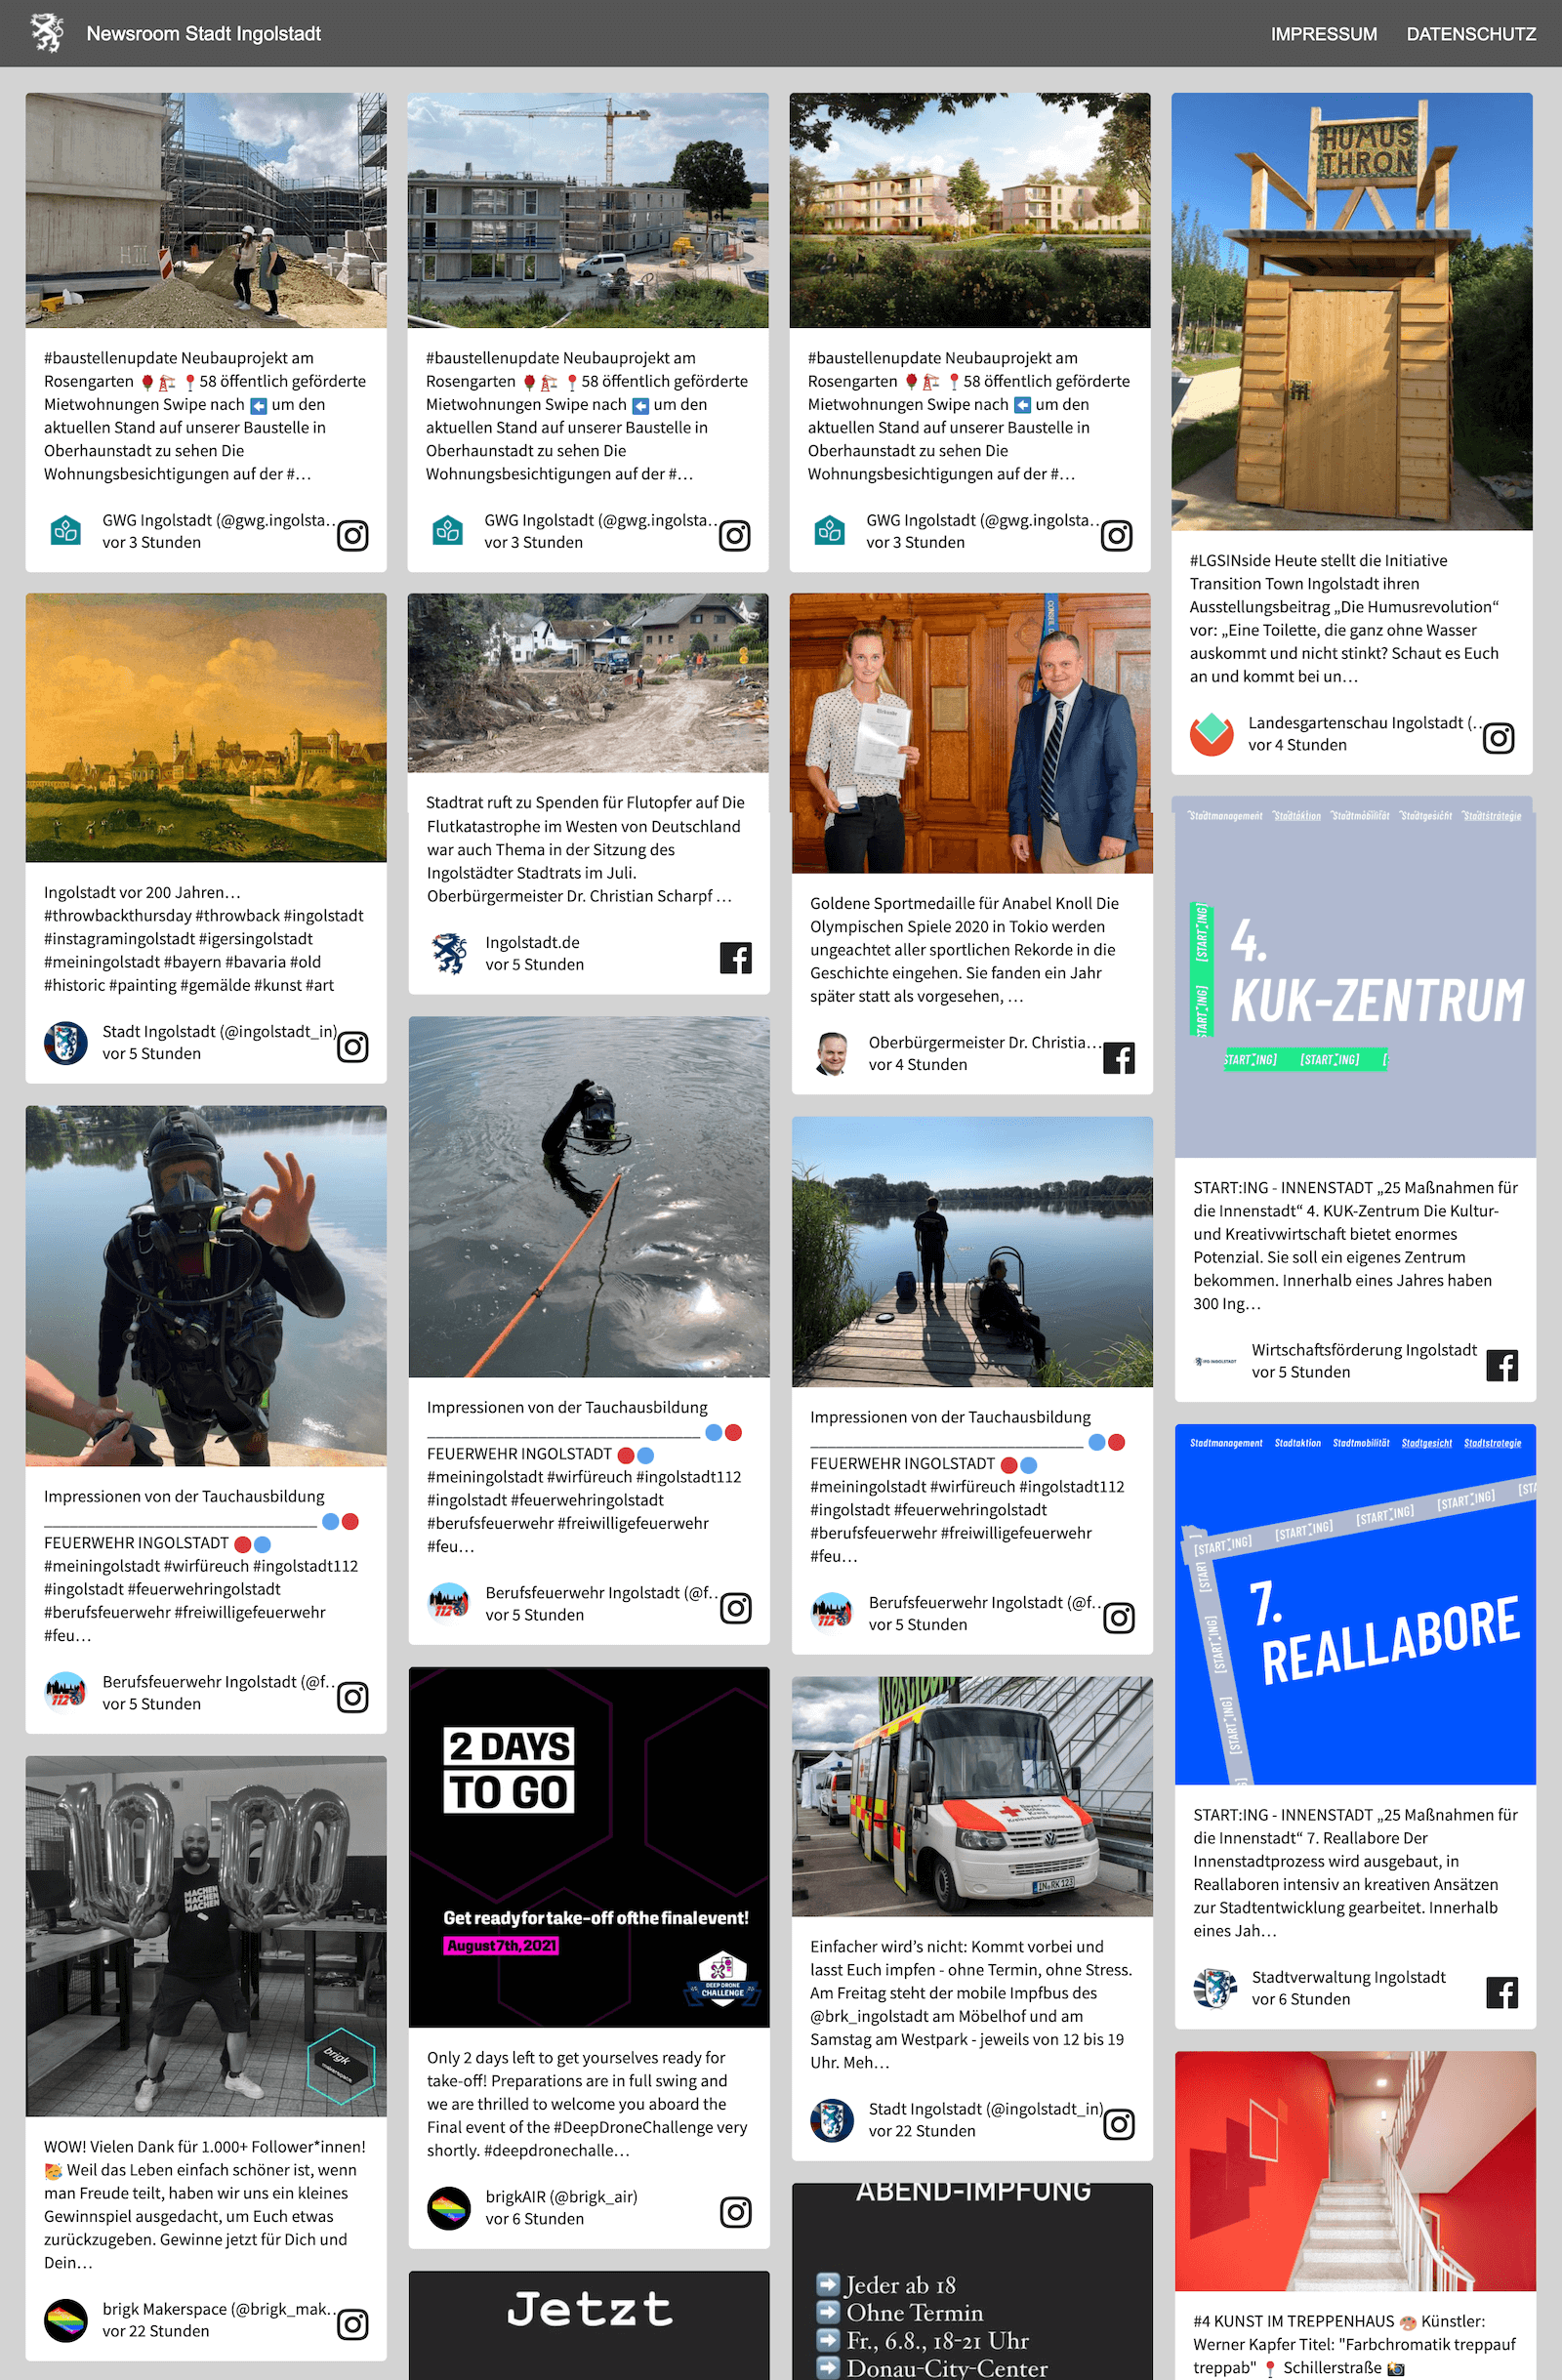 Screenshot of the social media newsroom embed on the Ingolstadt website. It shows posts from various sources, such as the city, the mayor, the fire brigade, cultural institutions and a construction company.